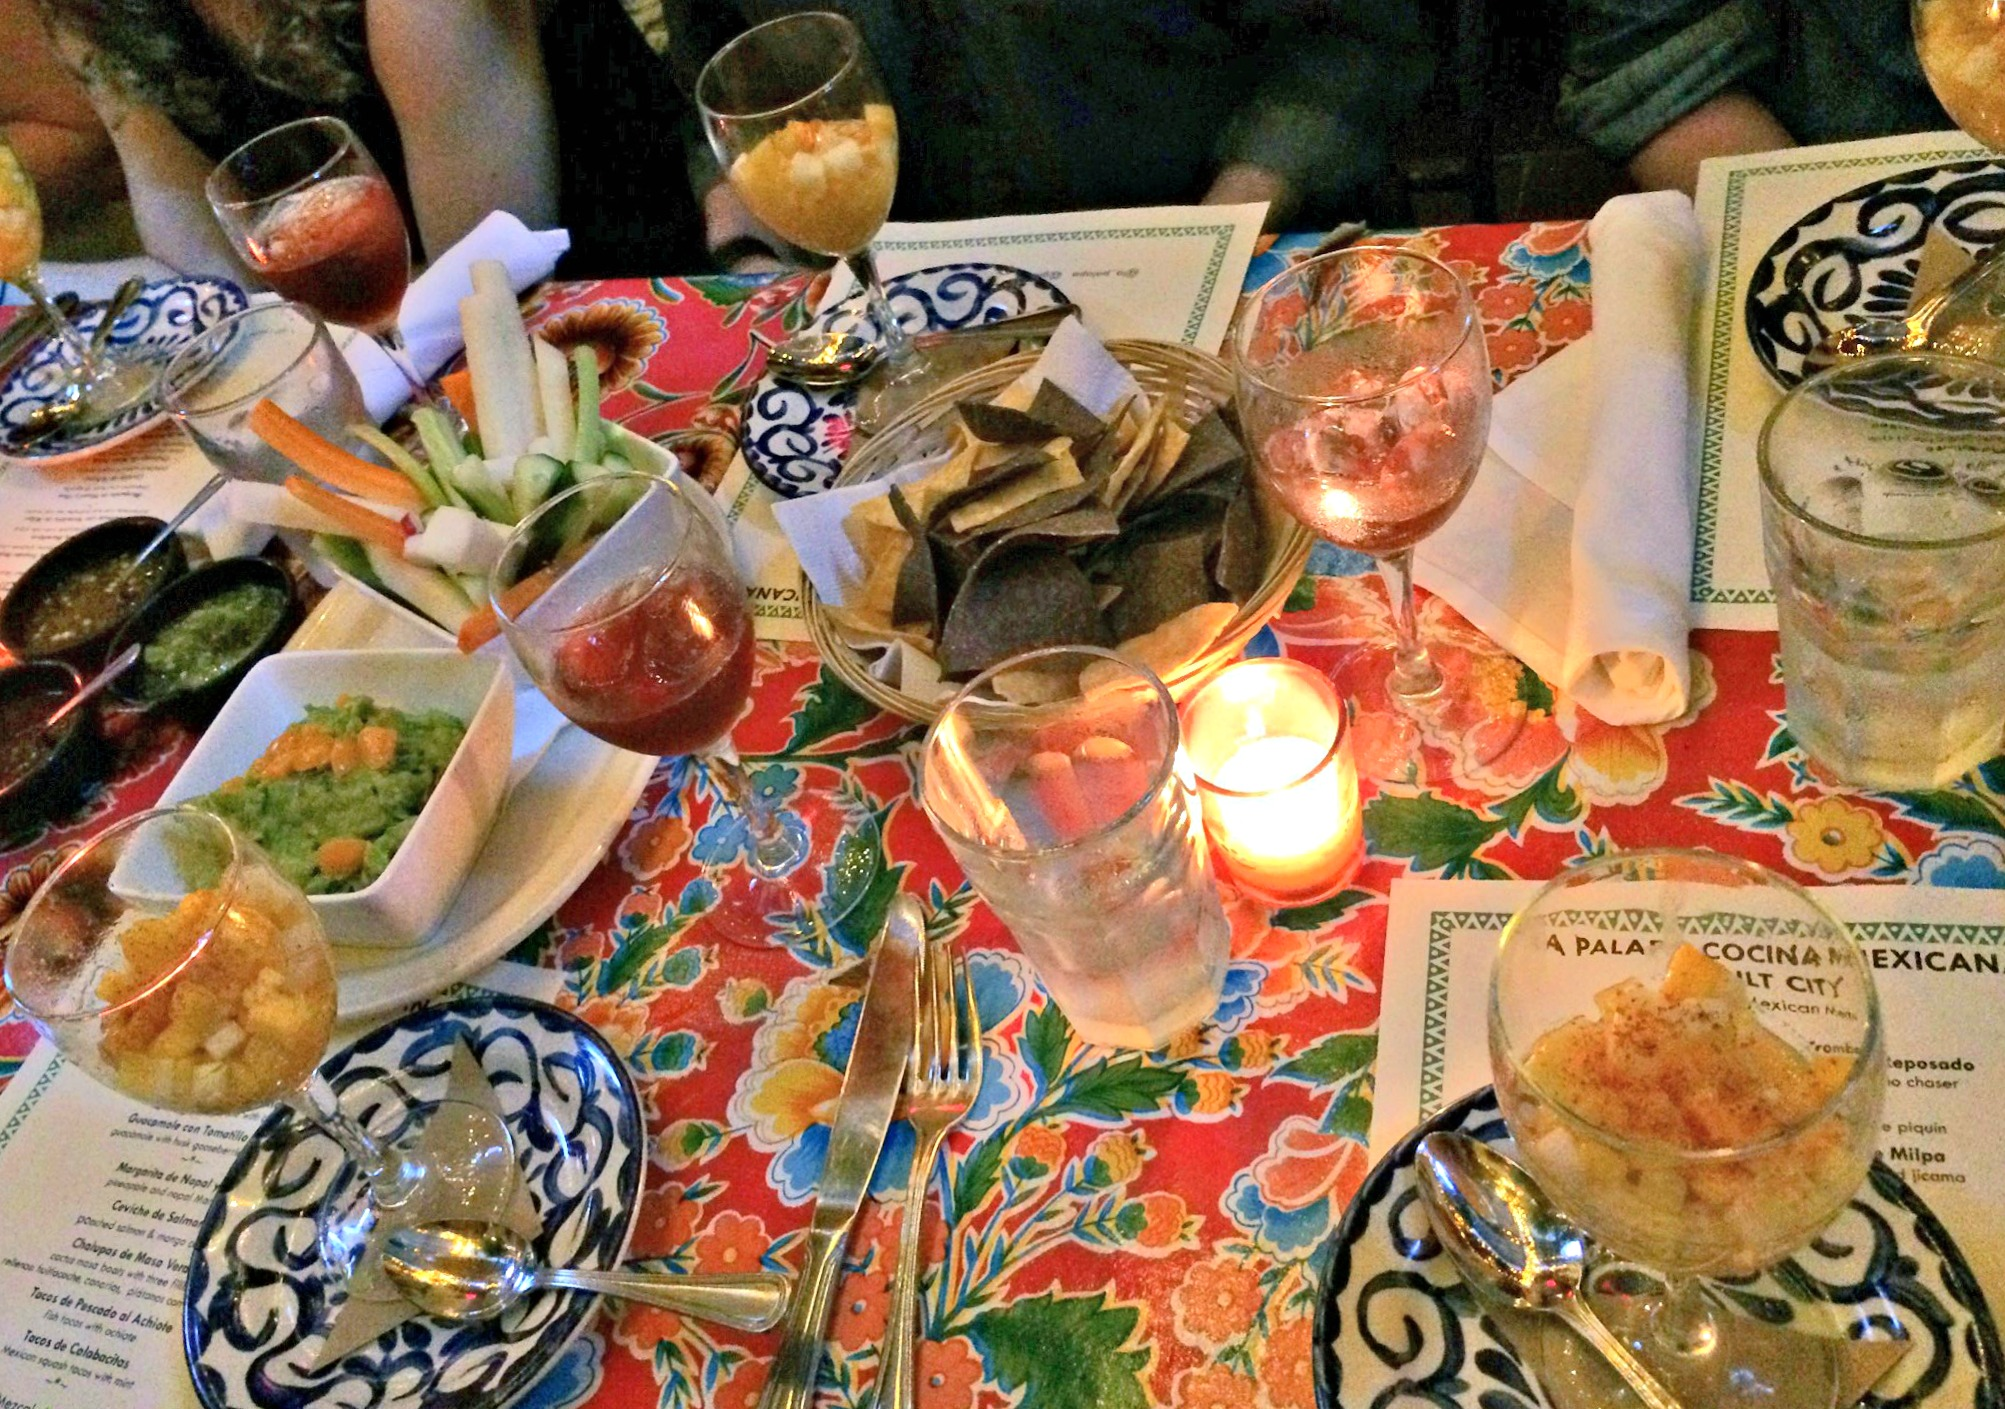 NYC blogger dinner at La Palapa